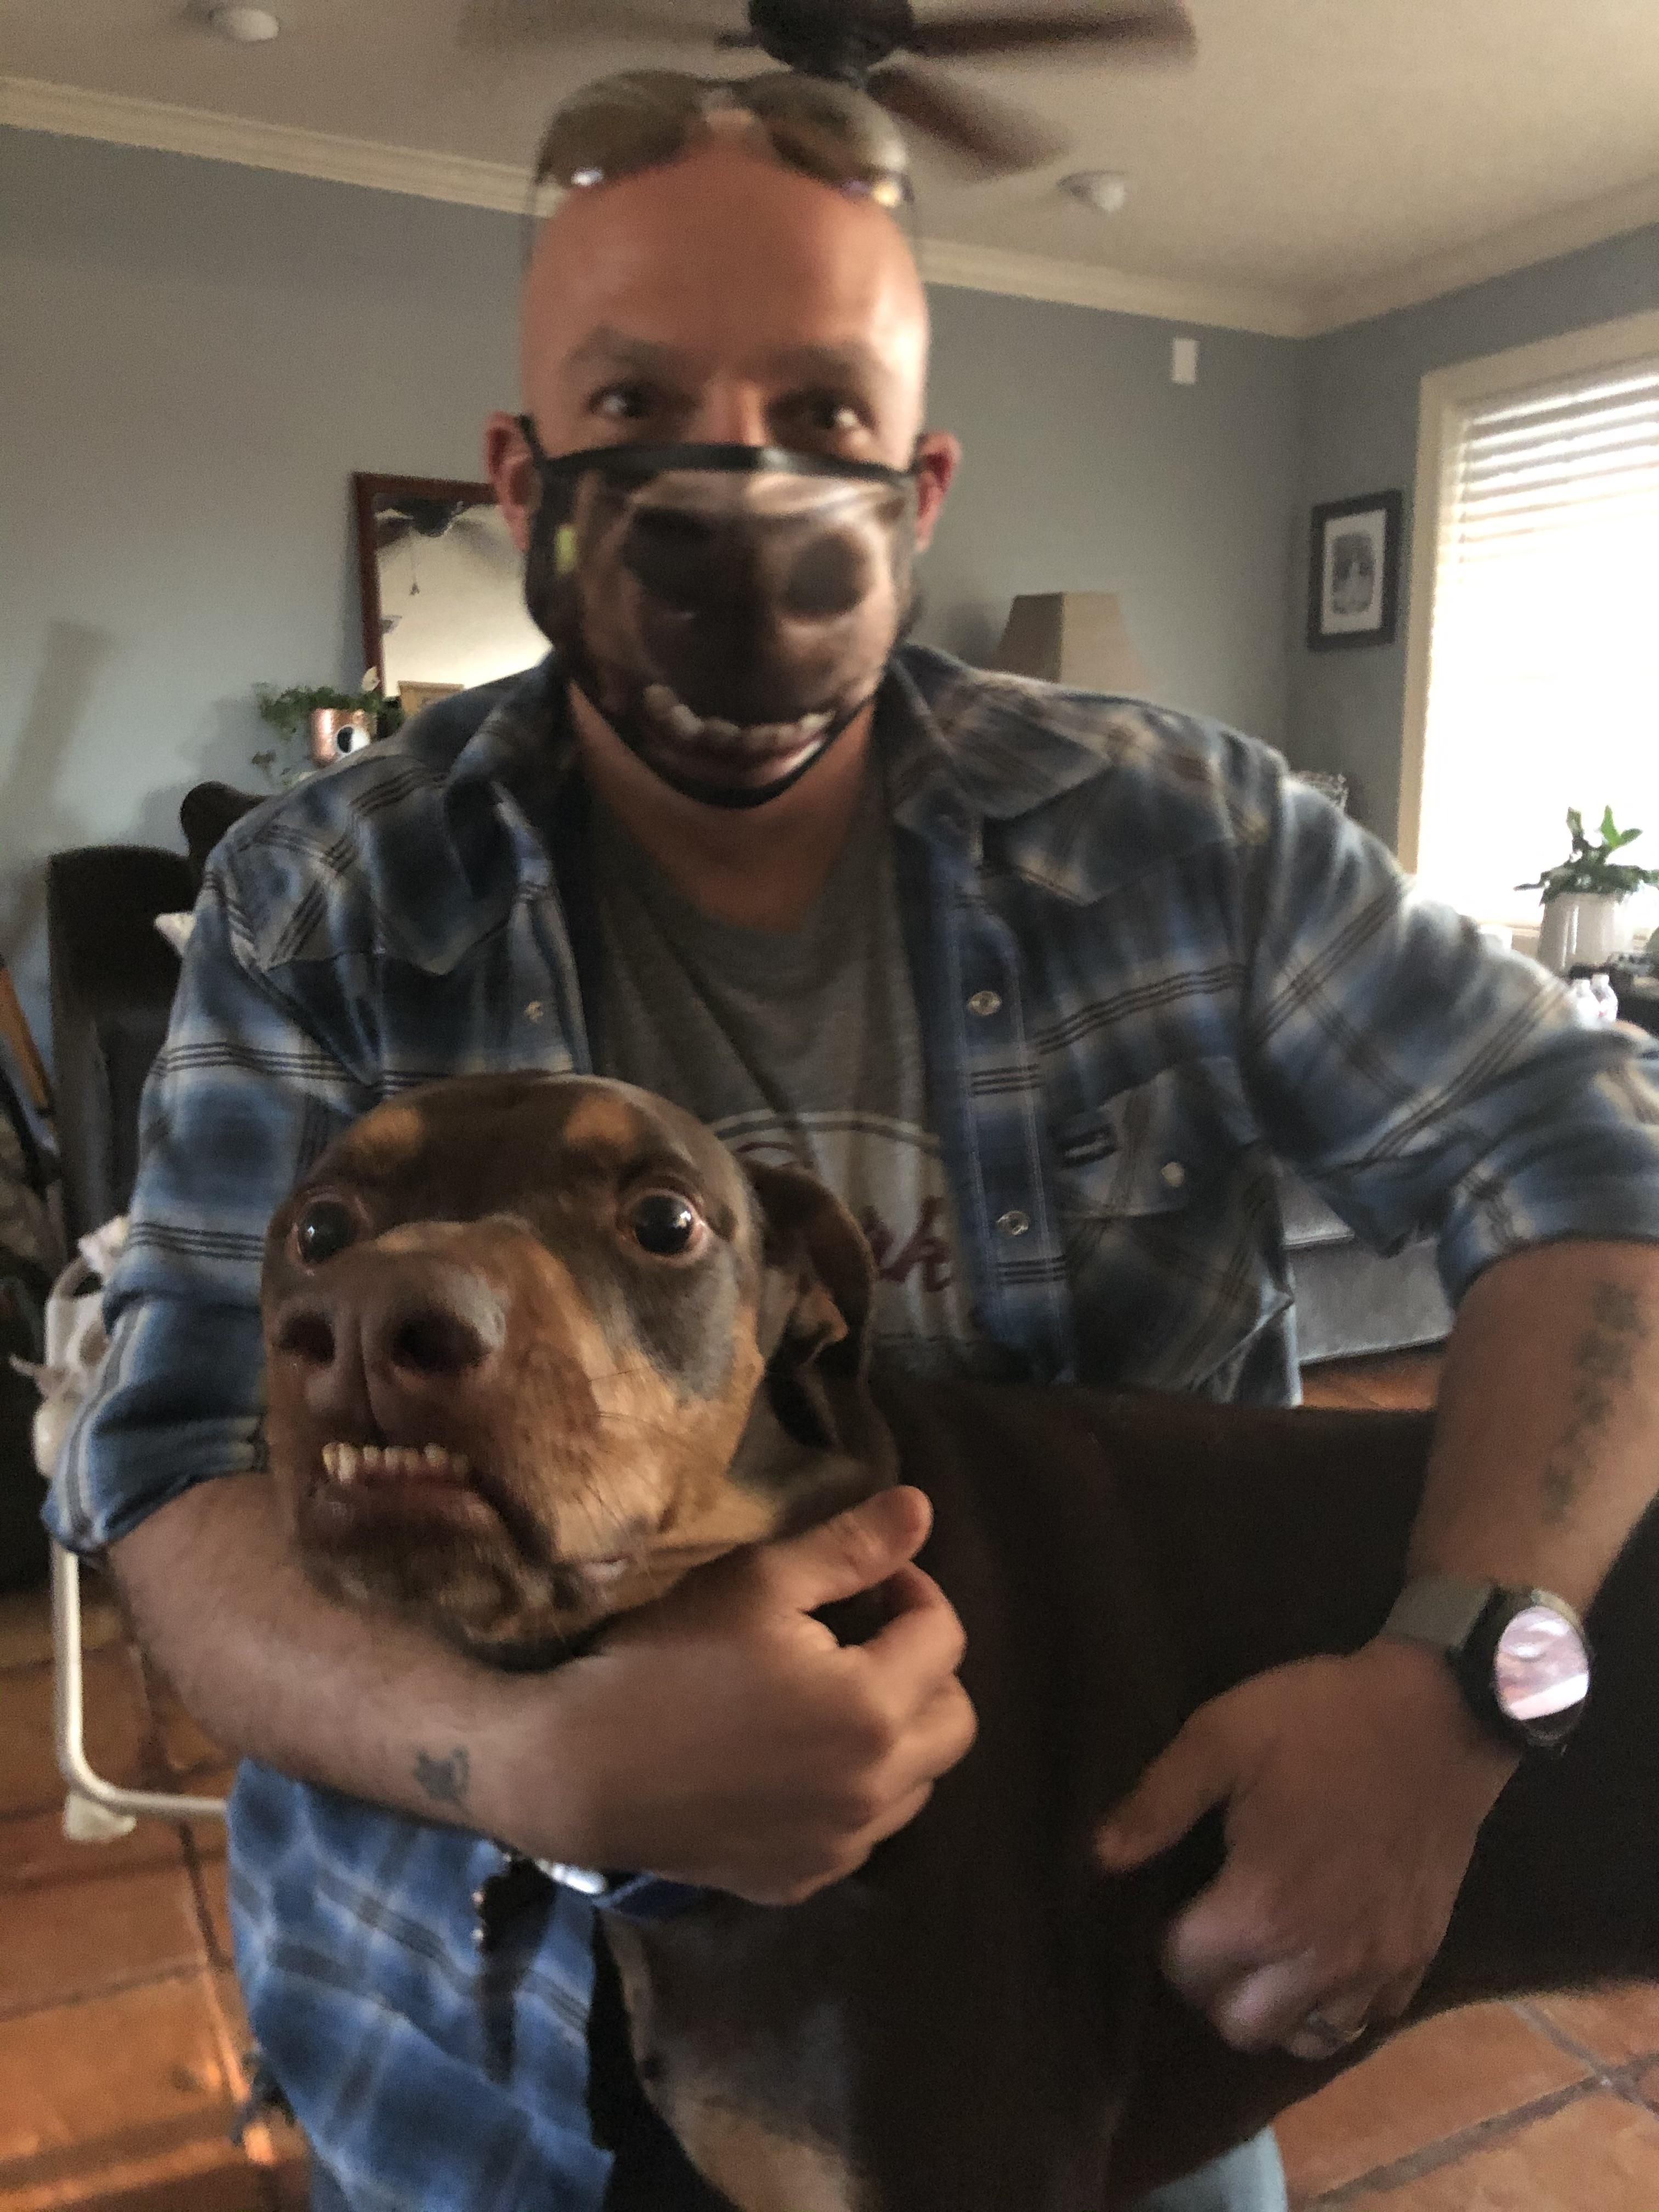 Wife got me a mask with my boy's face on it. Not sure whether funny or scary.